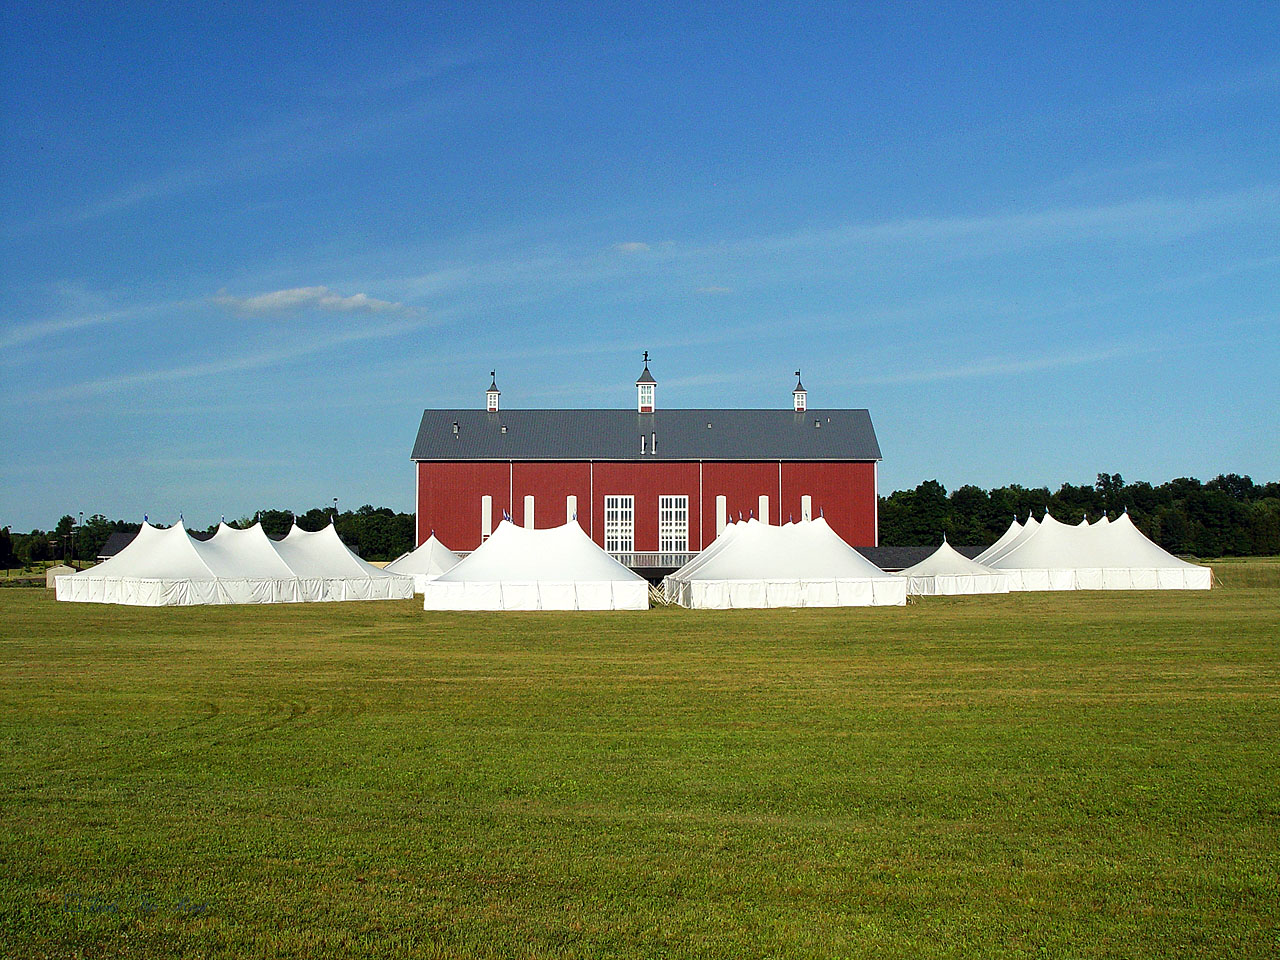 Tents with white sidewalls